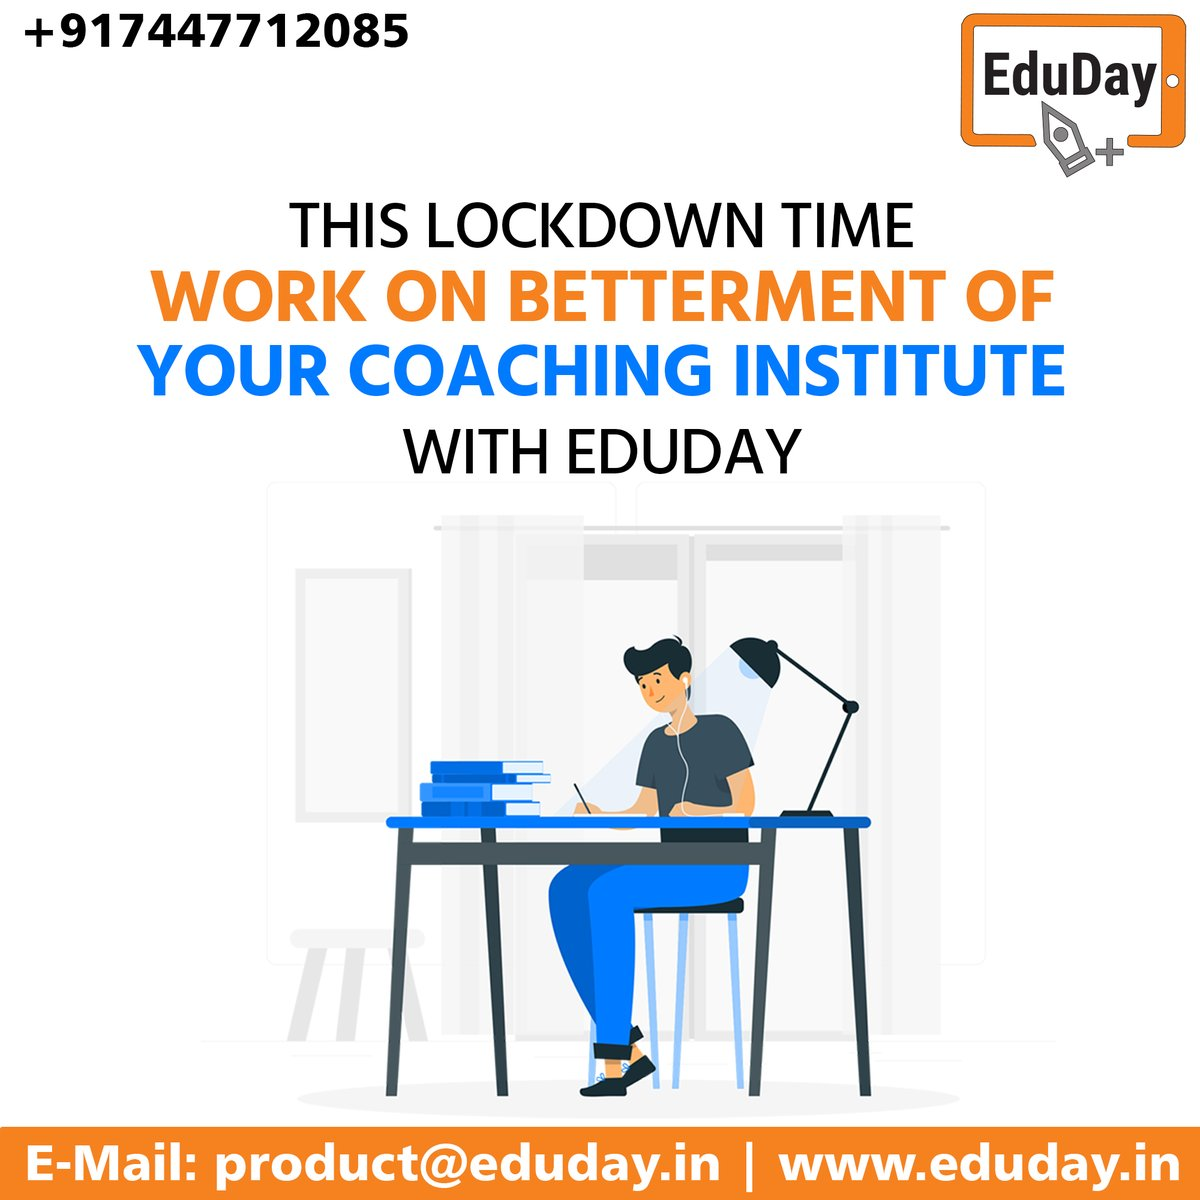 Transform Teaching, Inspire Learning and Deliver a world-class Student Experience.  Get in touch to know more:- Phone : +91 7447712085 E-Mail: product@eduday.in visit:- http://www.eduday.in  #eduday #edudayindia #pune #india #tab #tablets #CoachingInstitute #Coachingclassesspic.twitter.com/0NgnWPFVTT